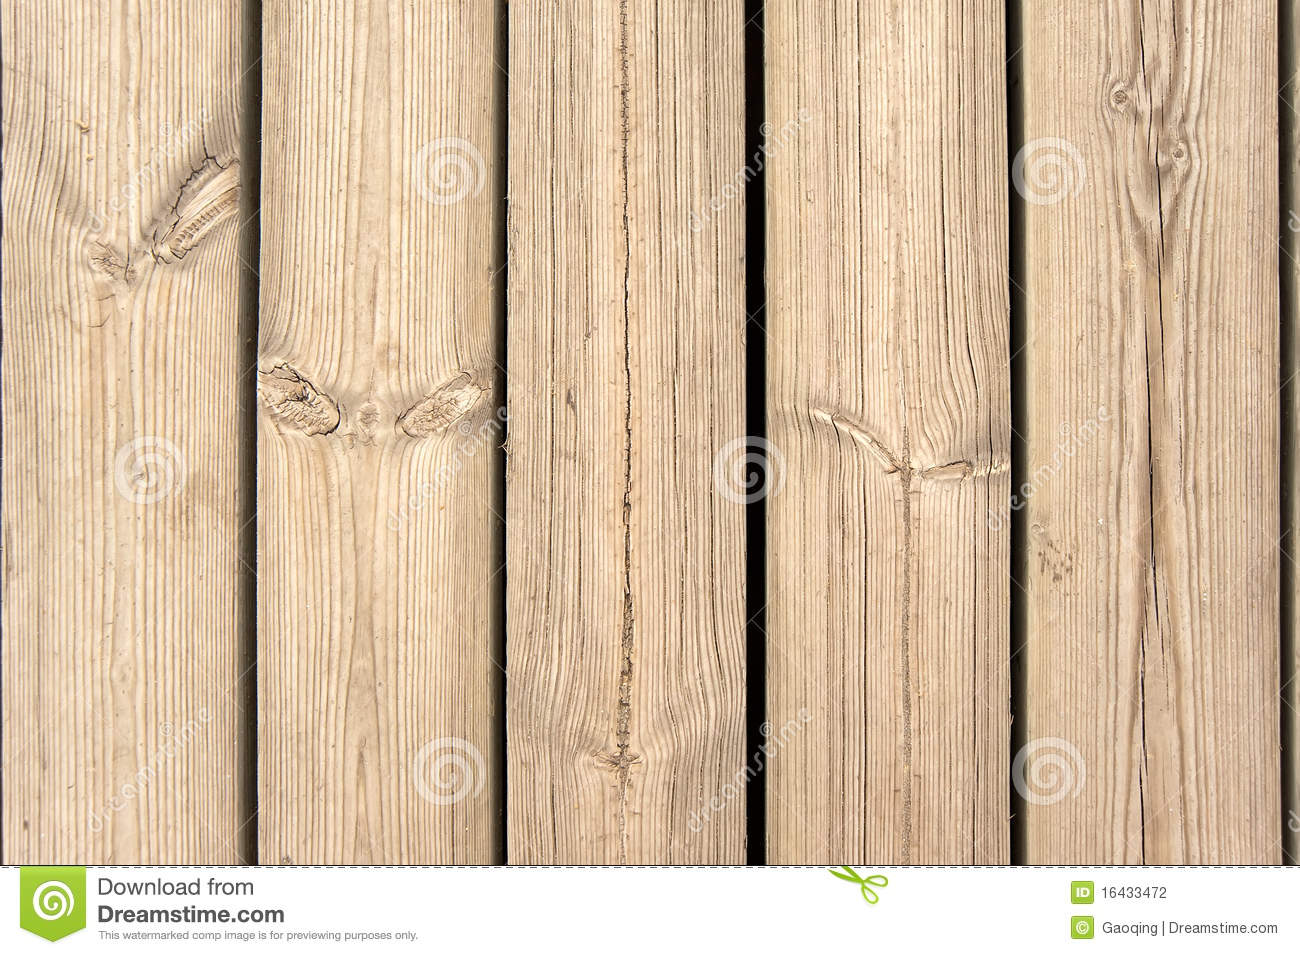 Deck wood textures background stock photography image for Timber decking materials